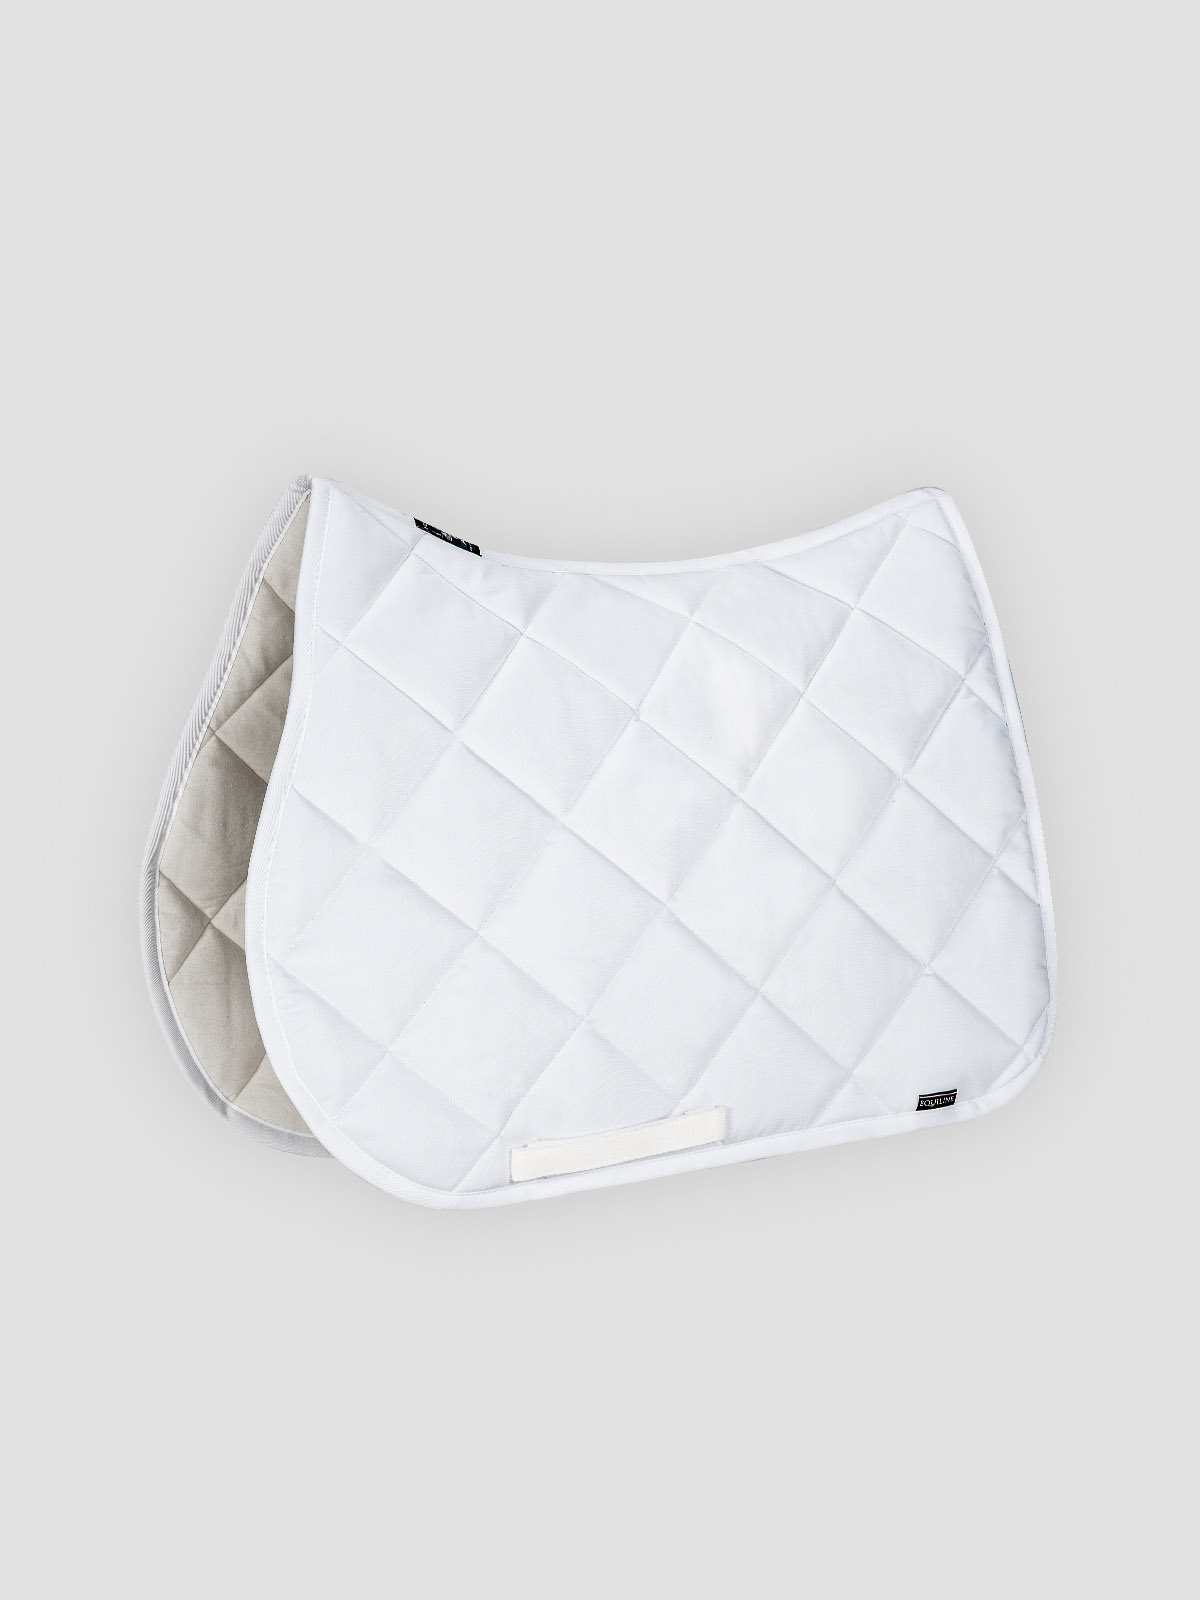 ROMBO - Rombo Saddle Pad 4